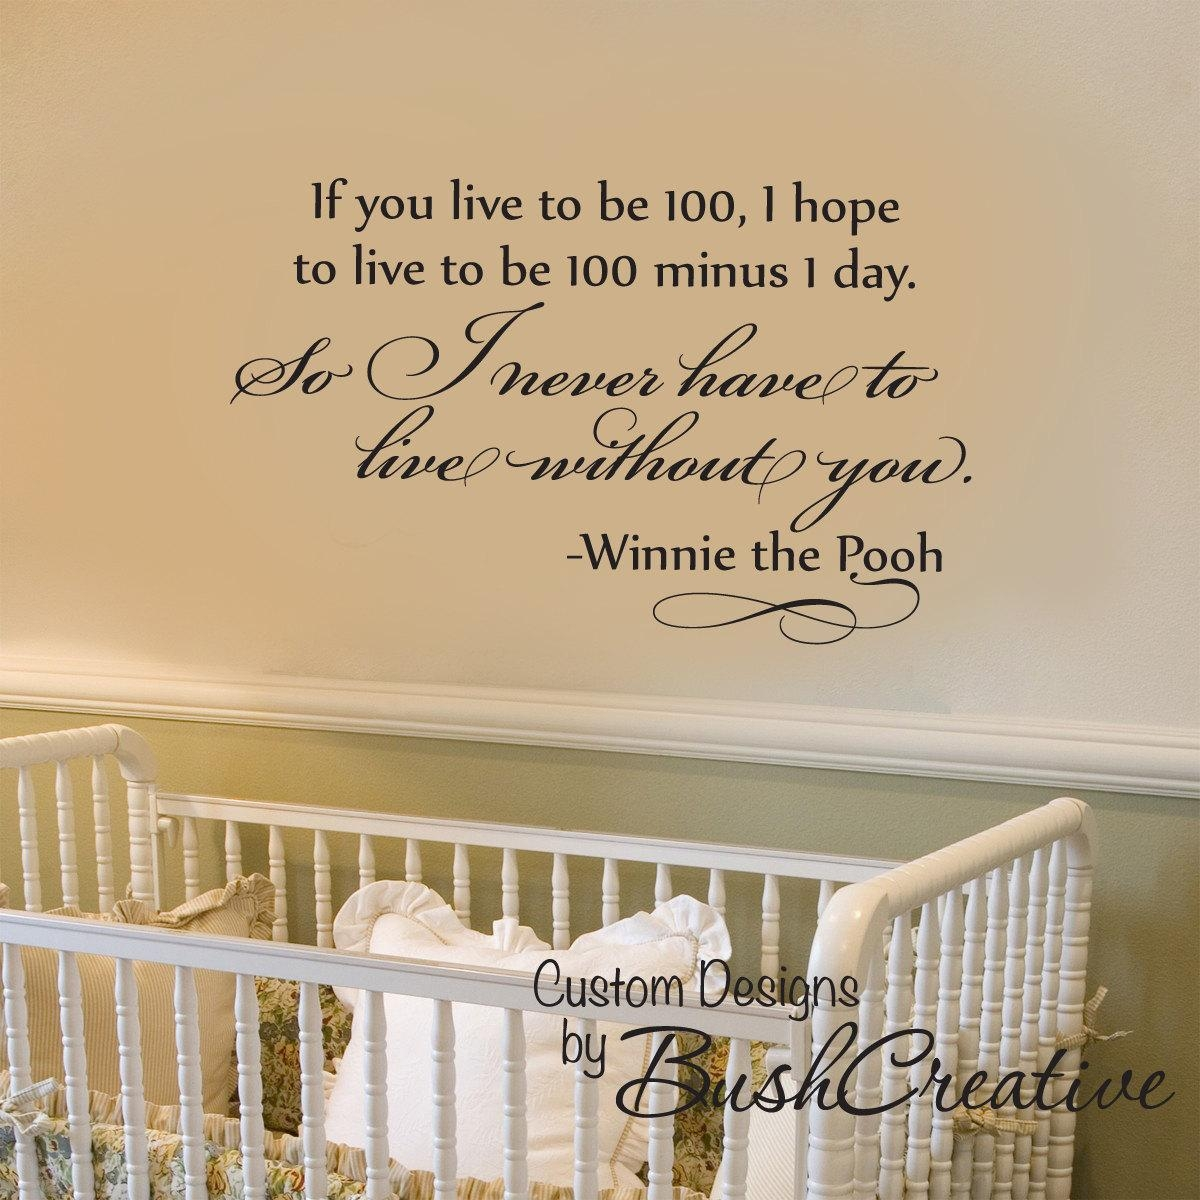 Classic Winnie The Pooh Baby Room Ideas | Design Ideas & Decors Inside Winnie The Pooh Nursery Quotes Wall Art (View 3 of 20)